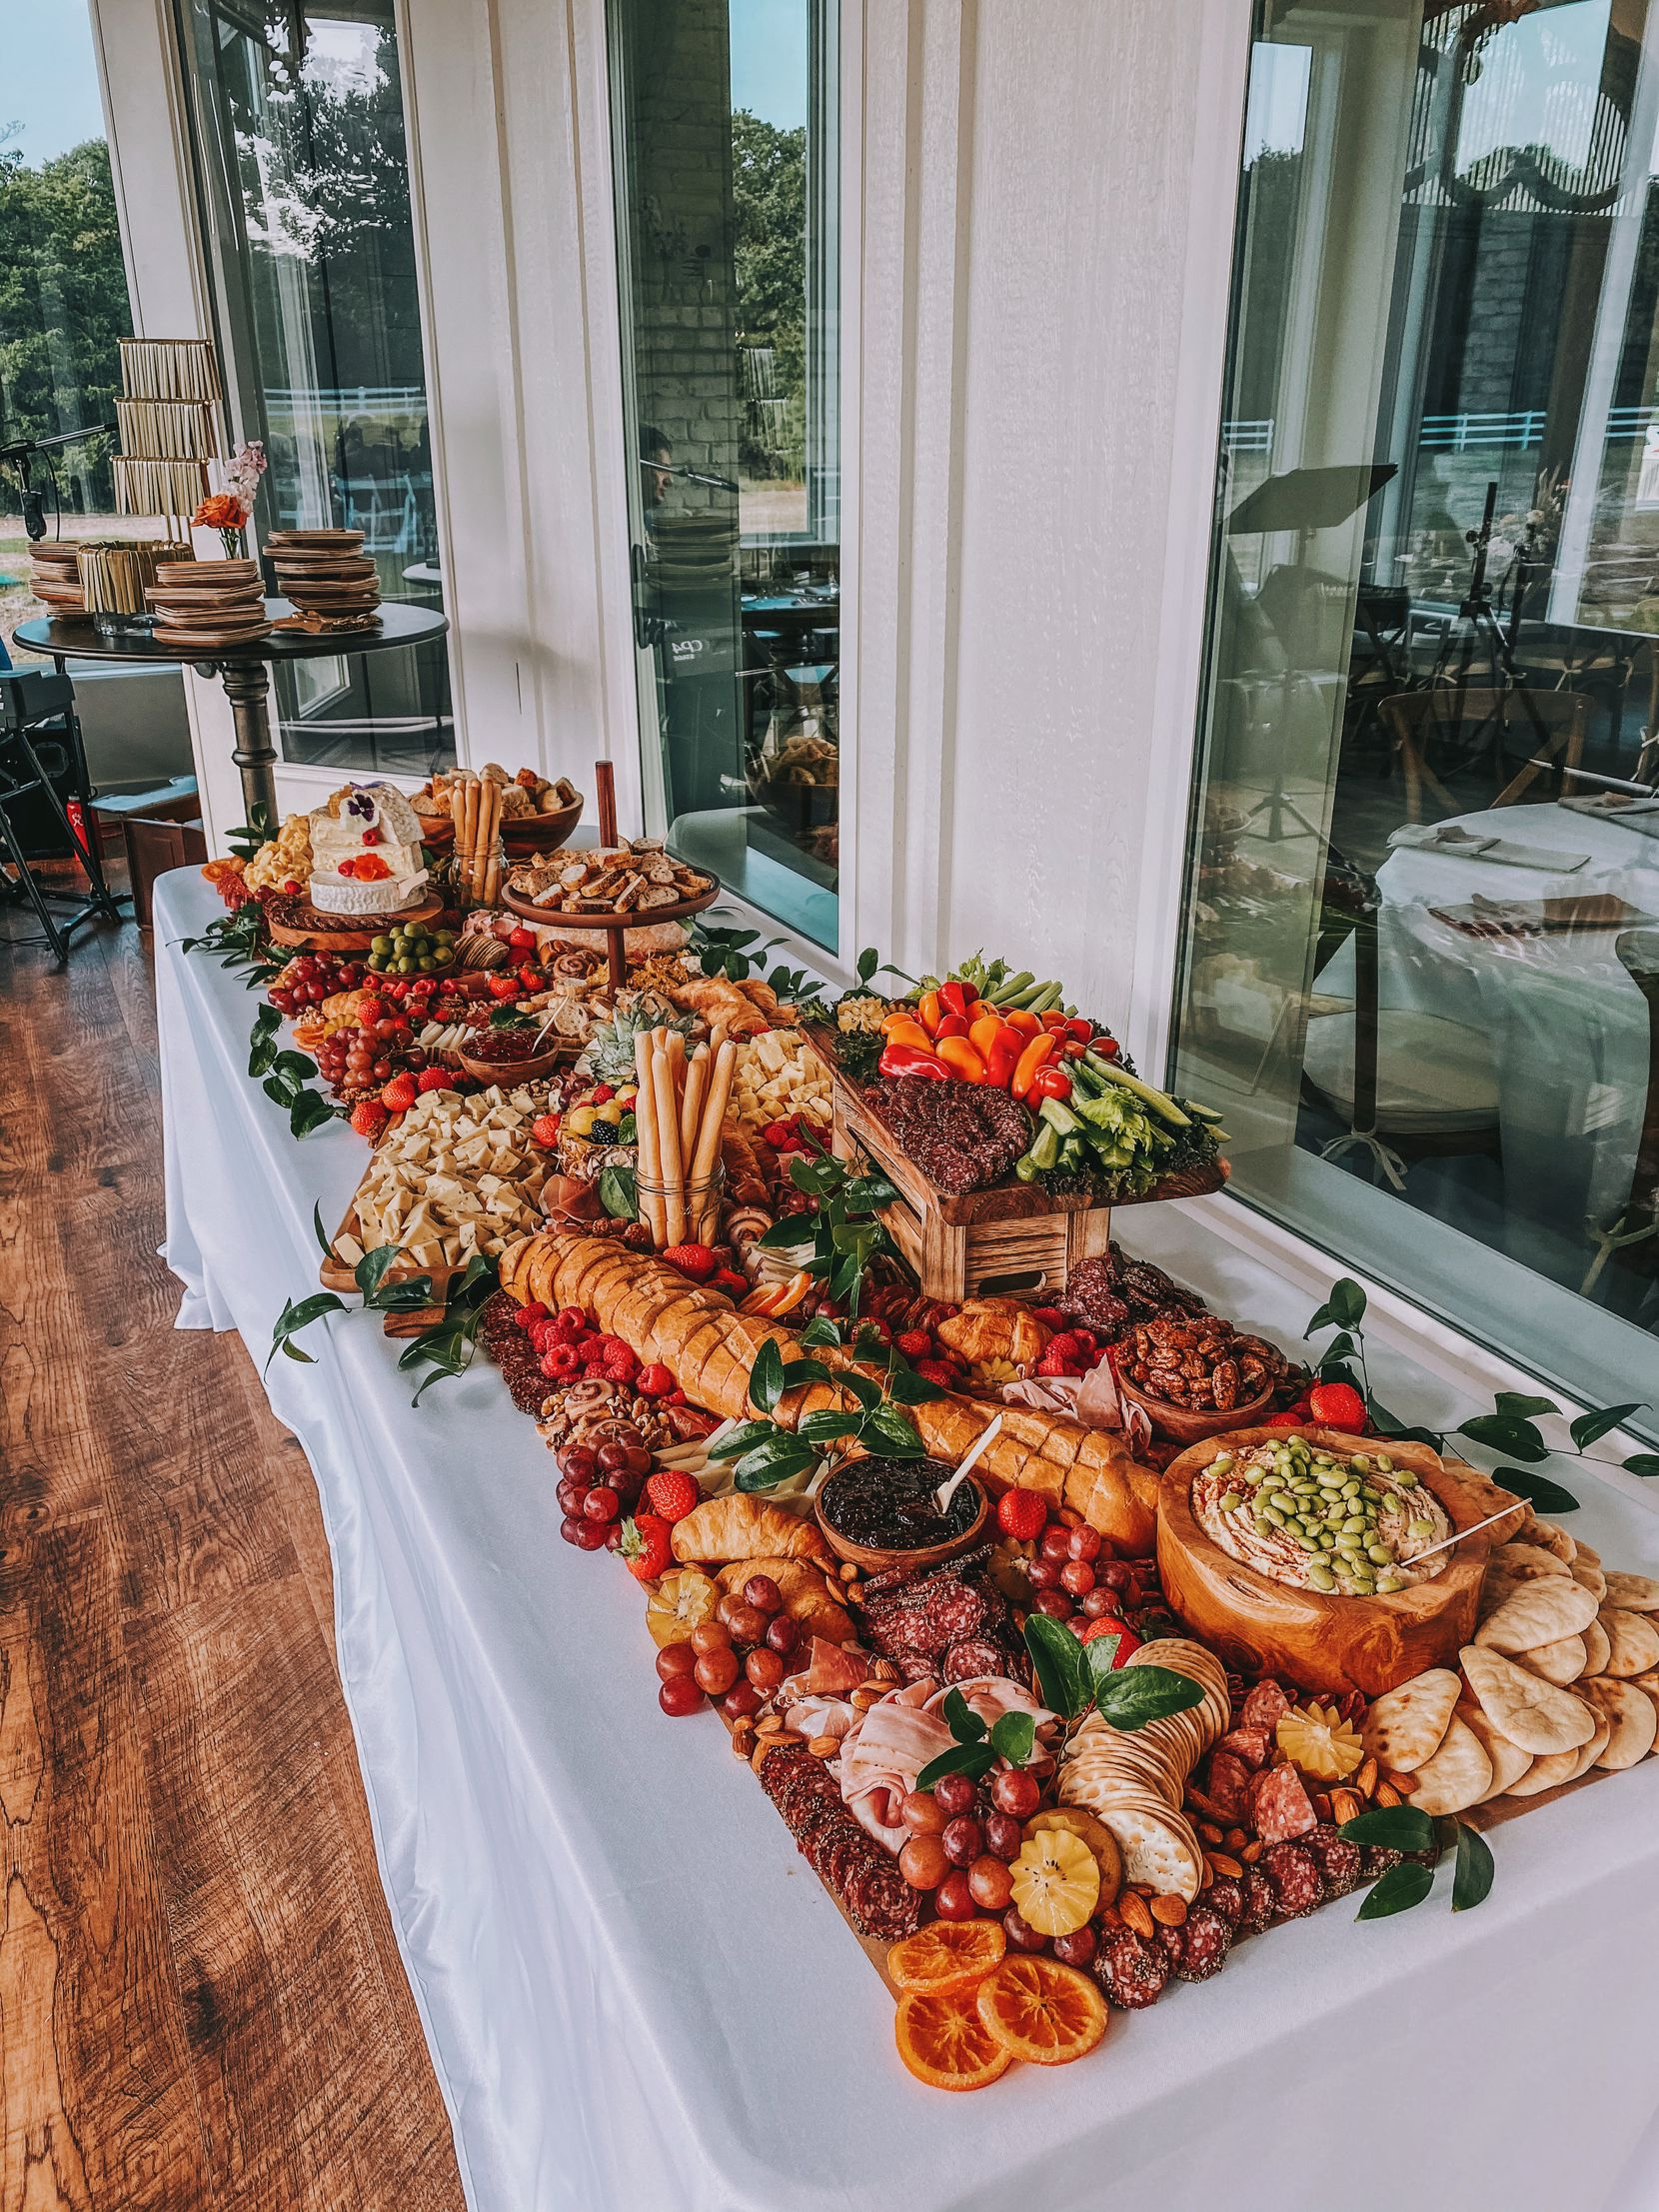 """A """"grazing table"""" from YaYaYum Boards, a Grapevine business selling charcuterie, dessert and themed snacking boards."""